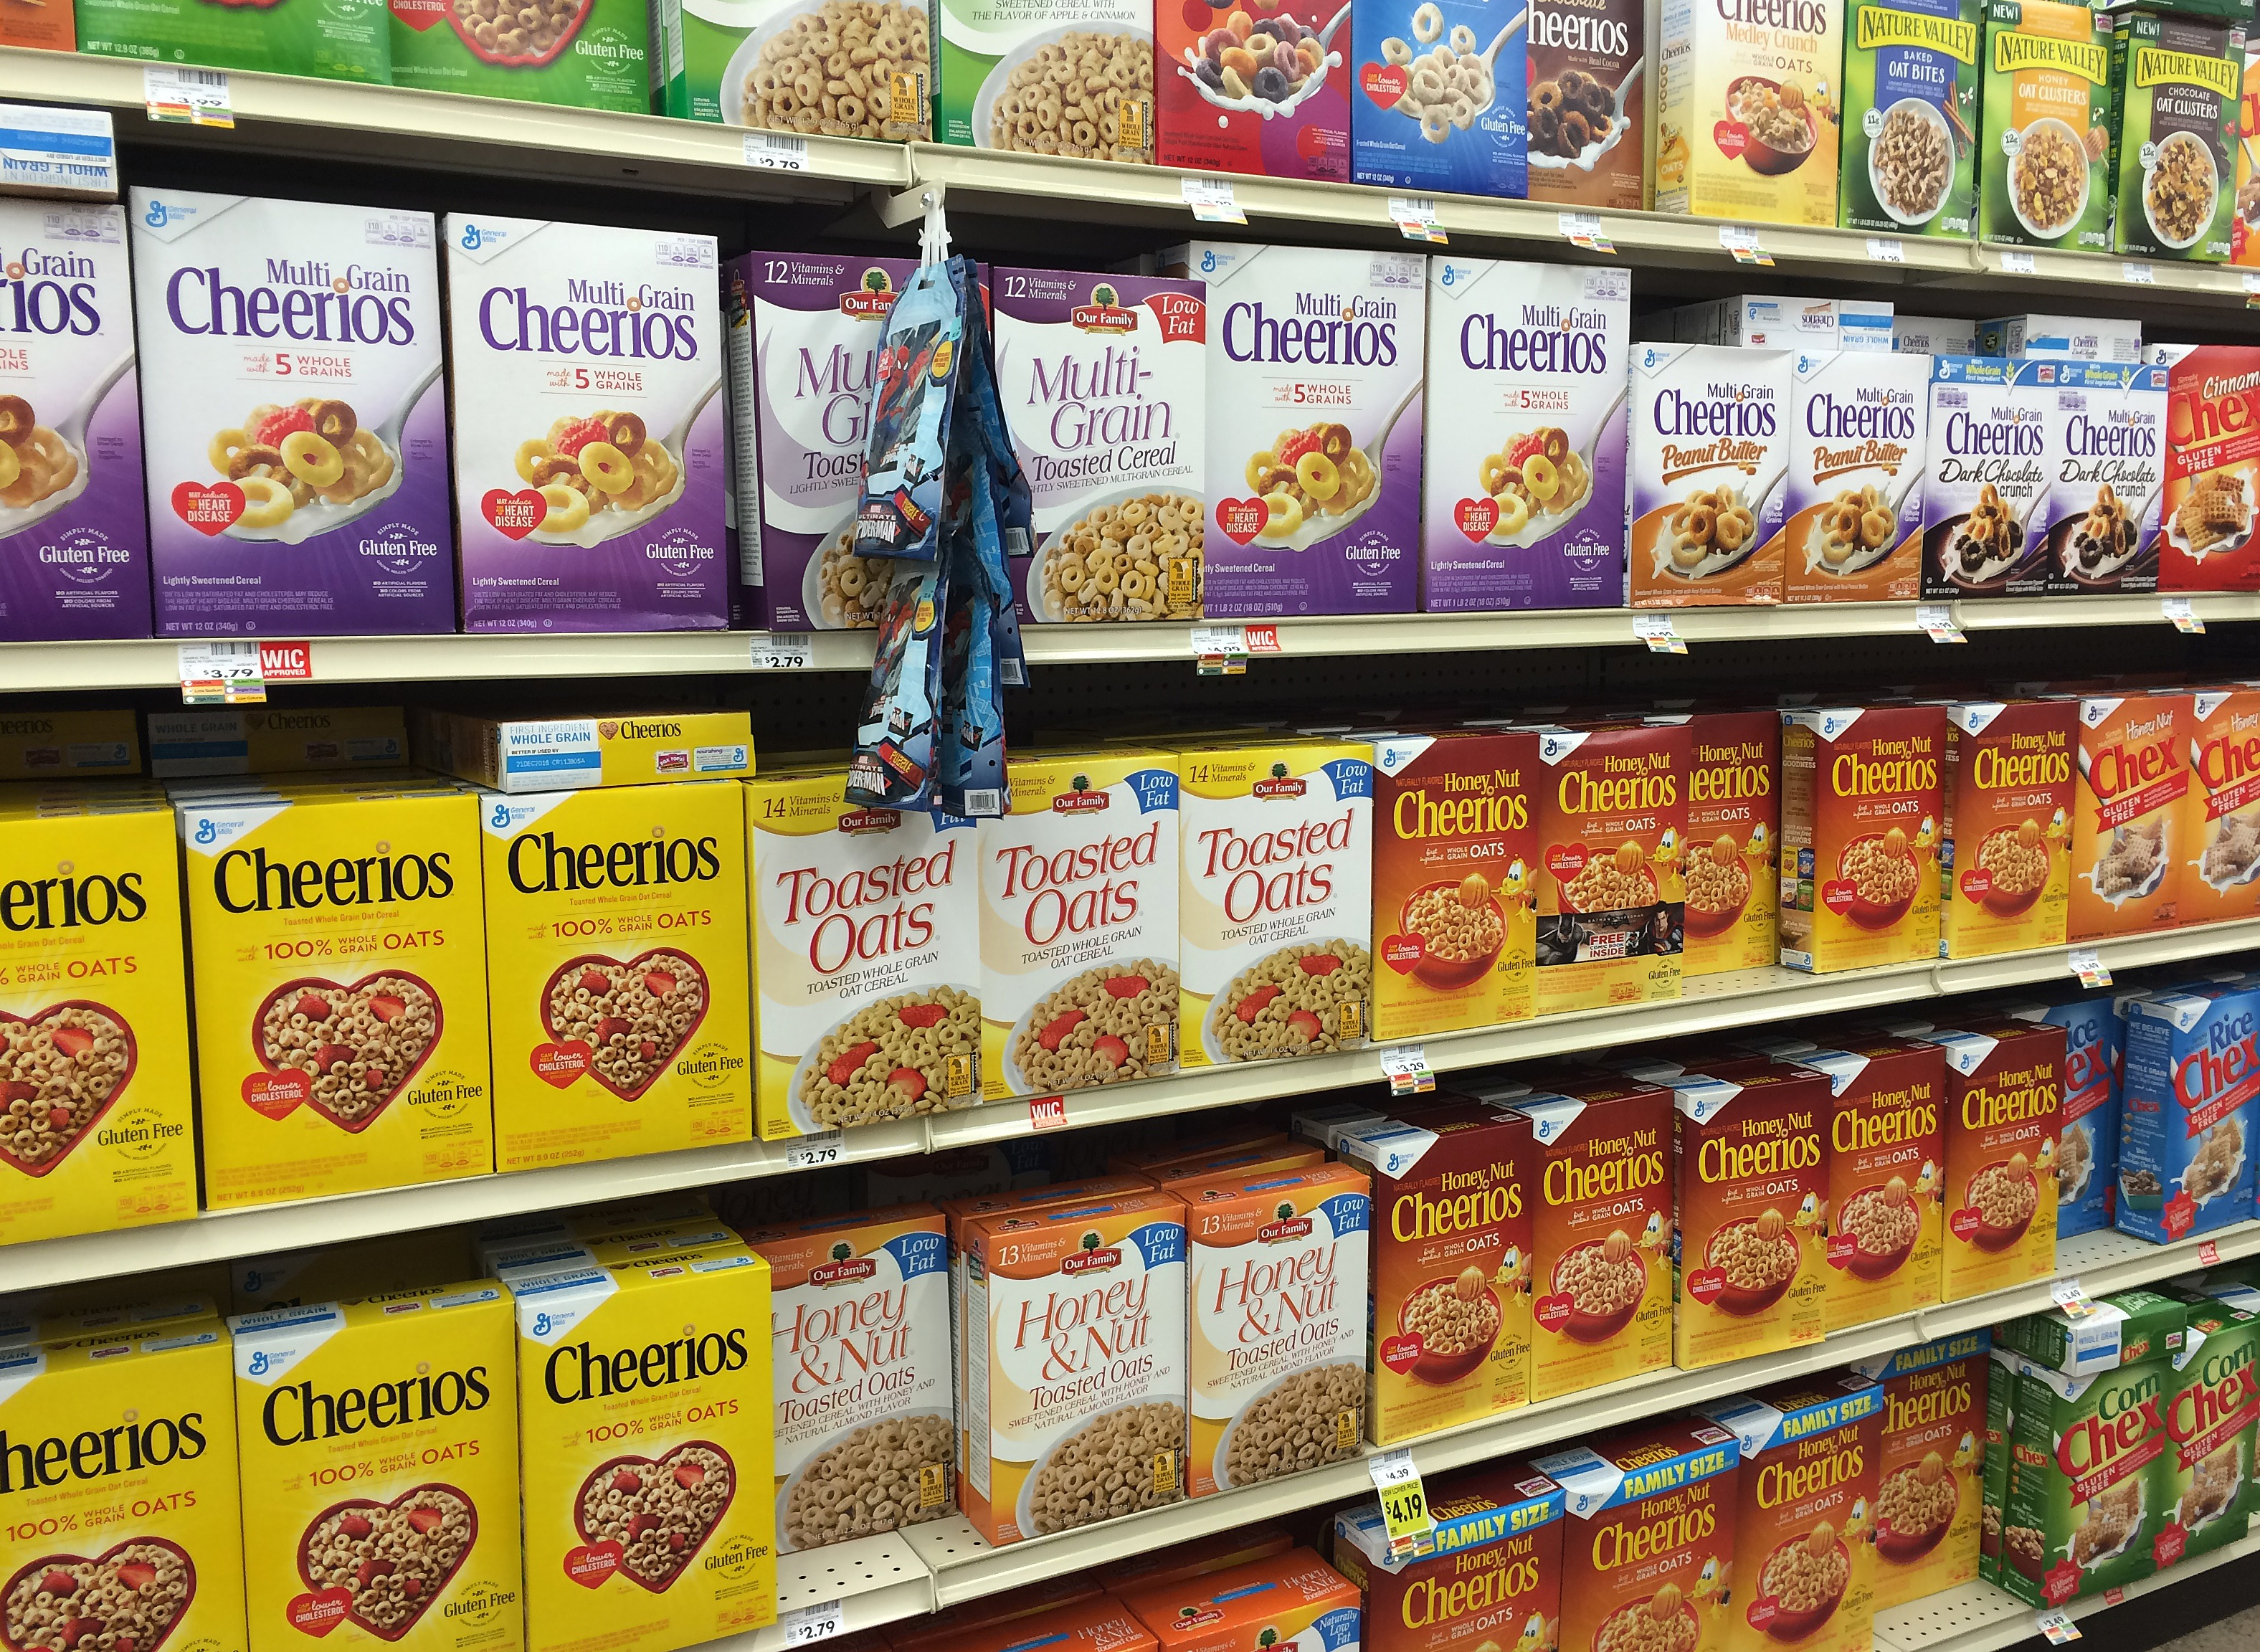 More Than a Trigger: How Cheerios Used Bees to Increase Consumer Buzz